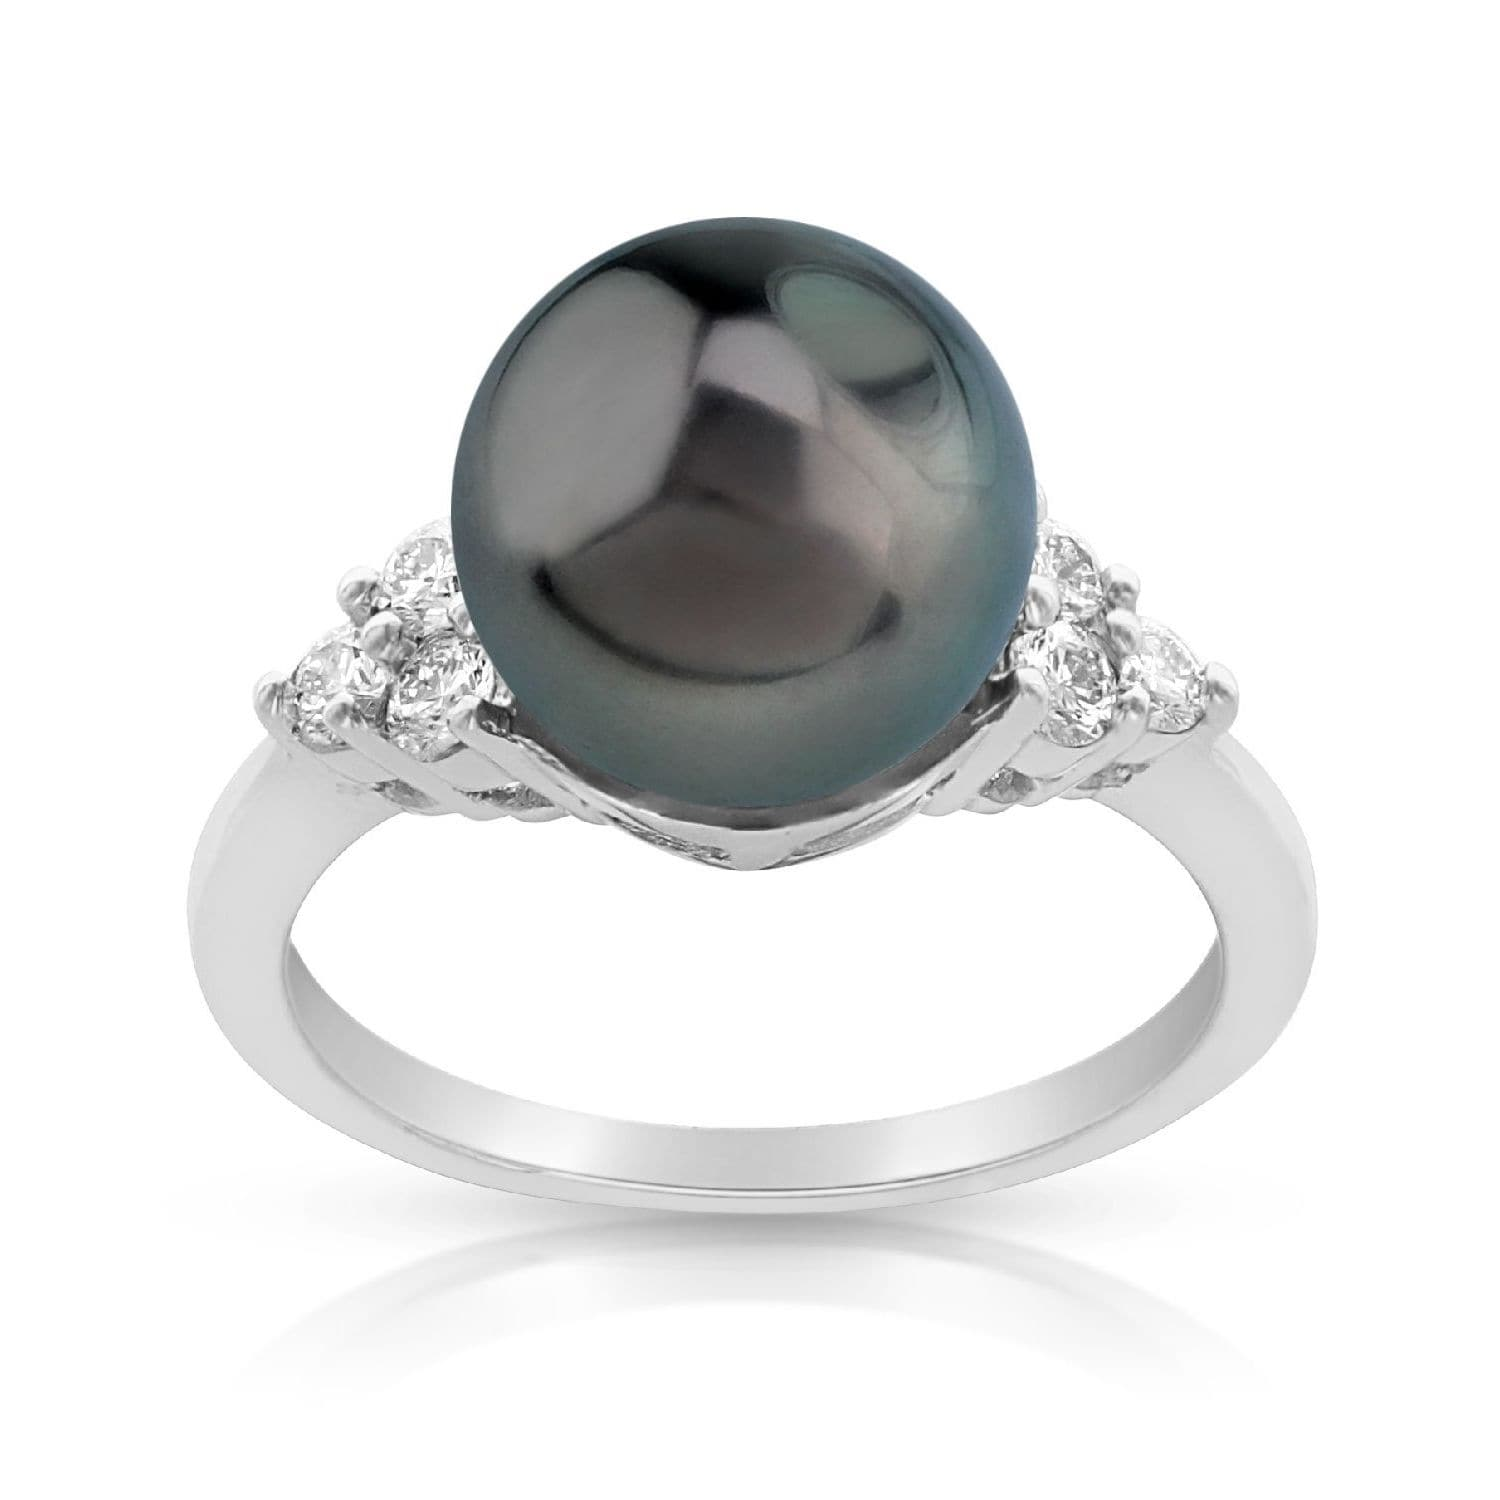 Radiance Pearl 14k Gold Tahitian South Sea Pearl and Diamond Accent Ring by Overstock